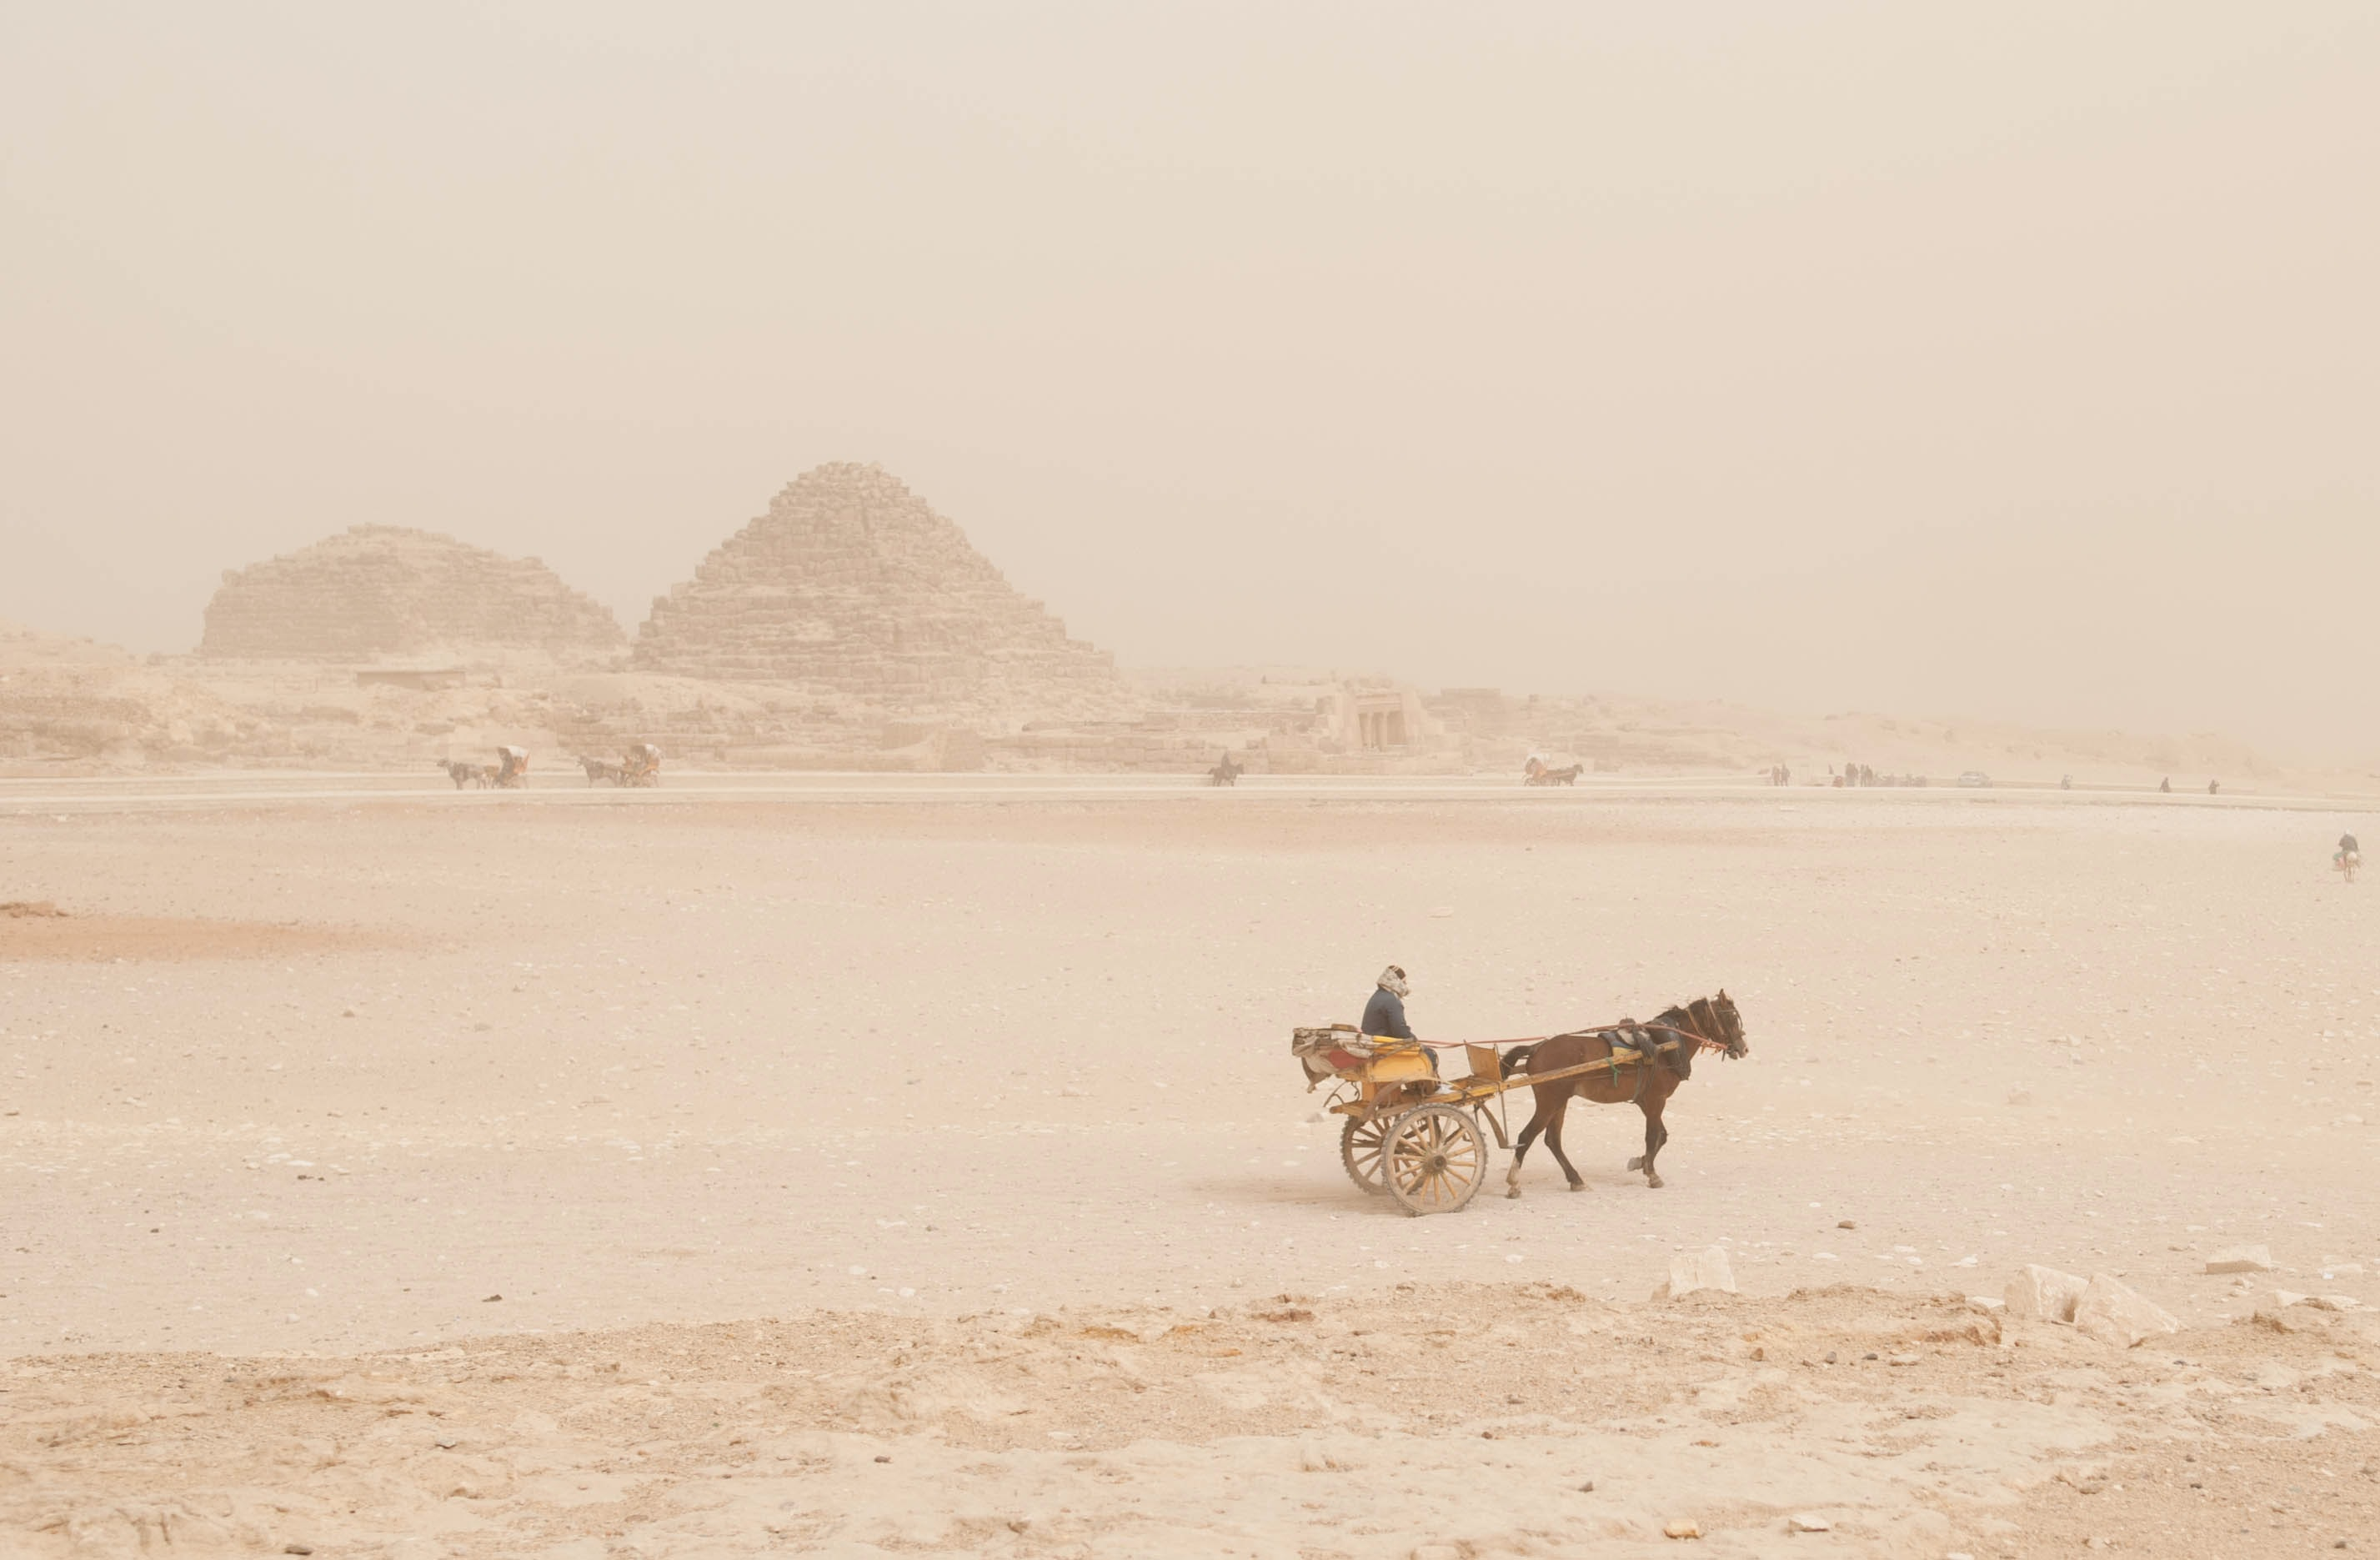 A woman sits on a small cart as a brown horse pulls it through the rocky desert